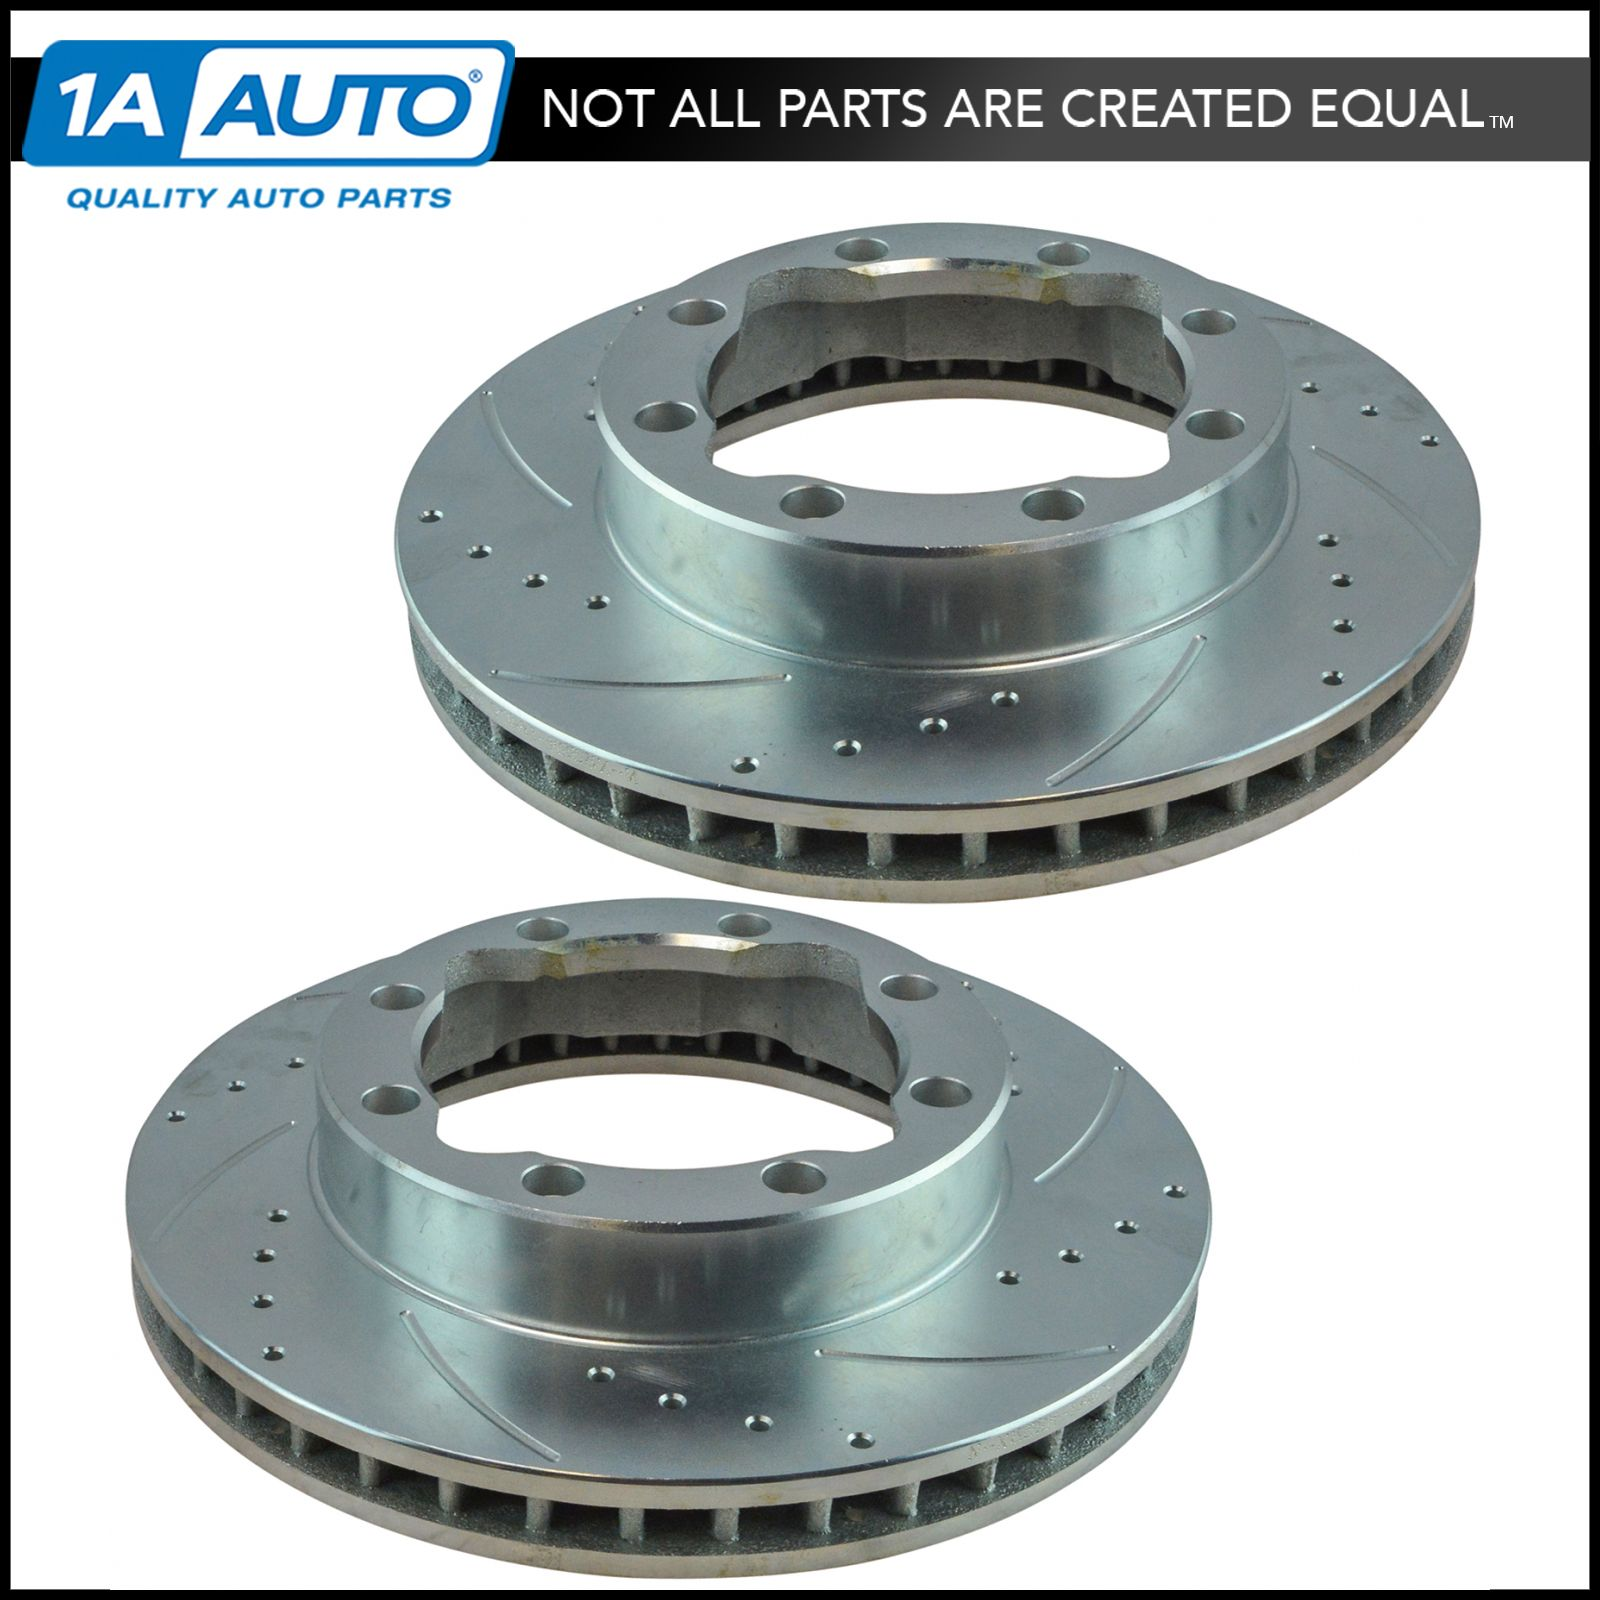 Nakamoto Performance Drilled Slotted Front Coated Brake Rotor Pair for GMC Truck